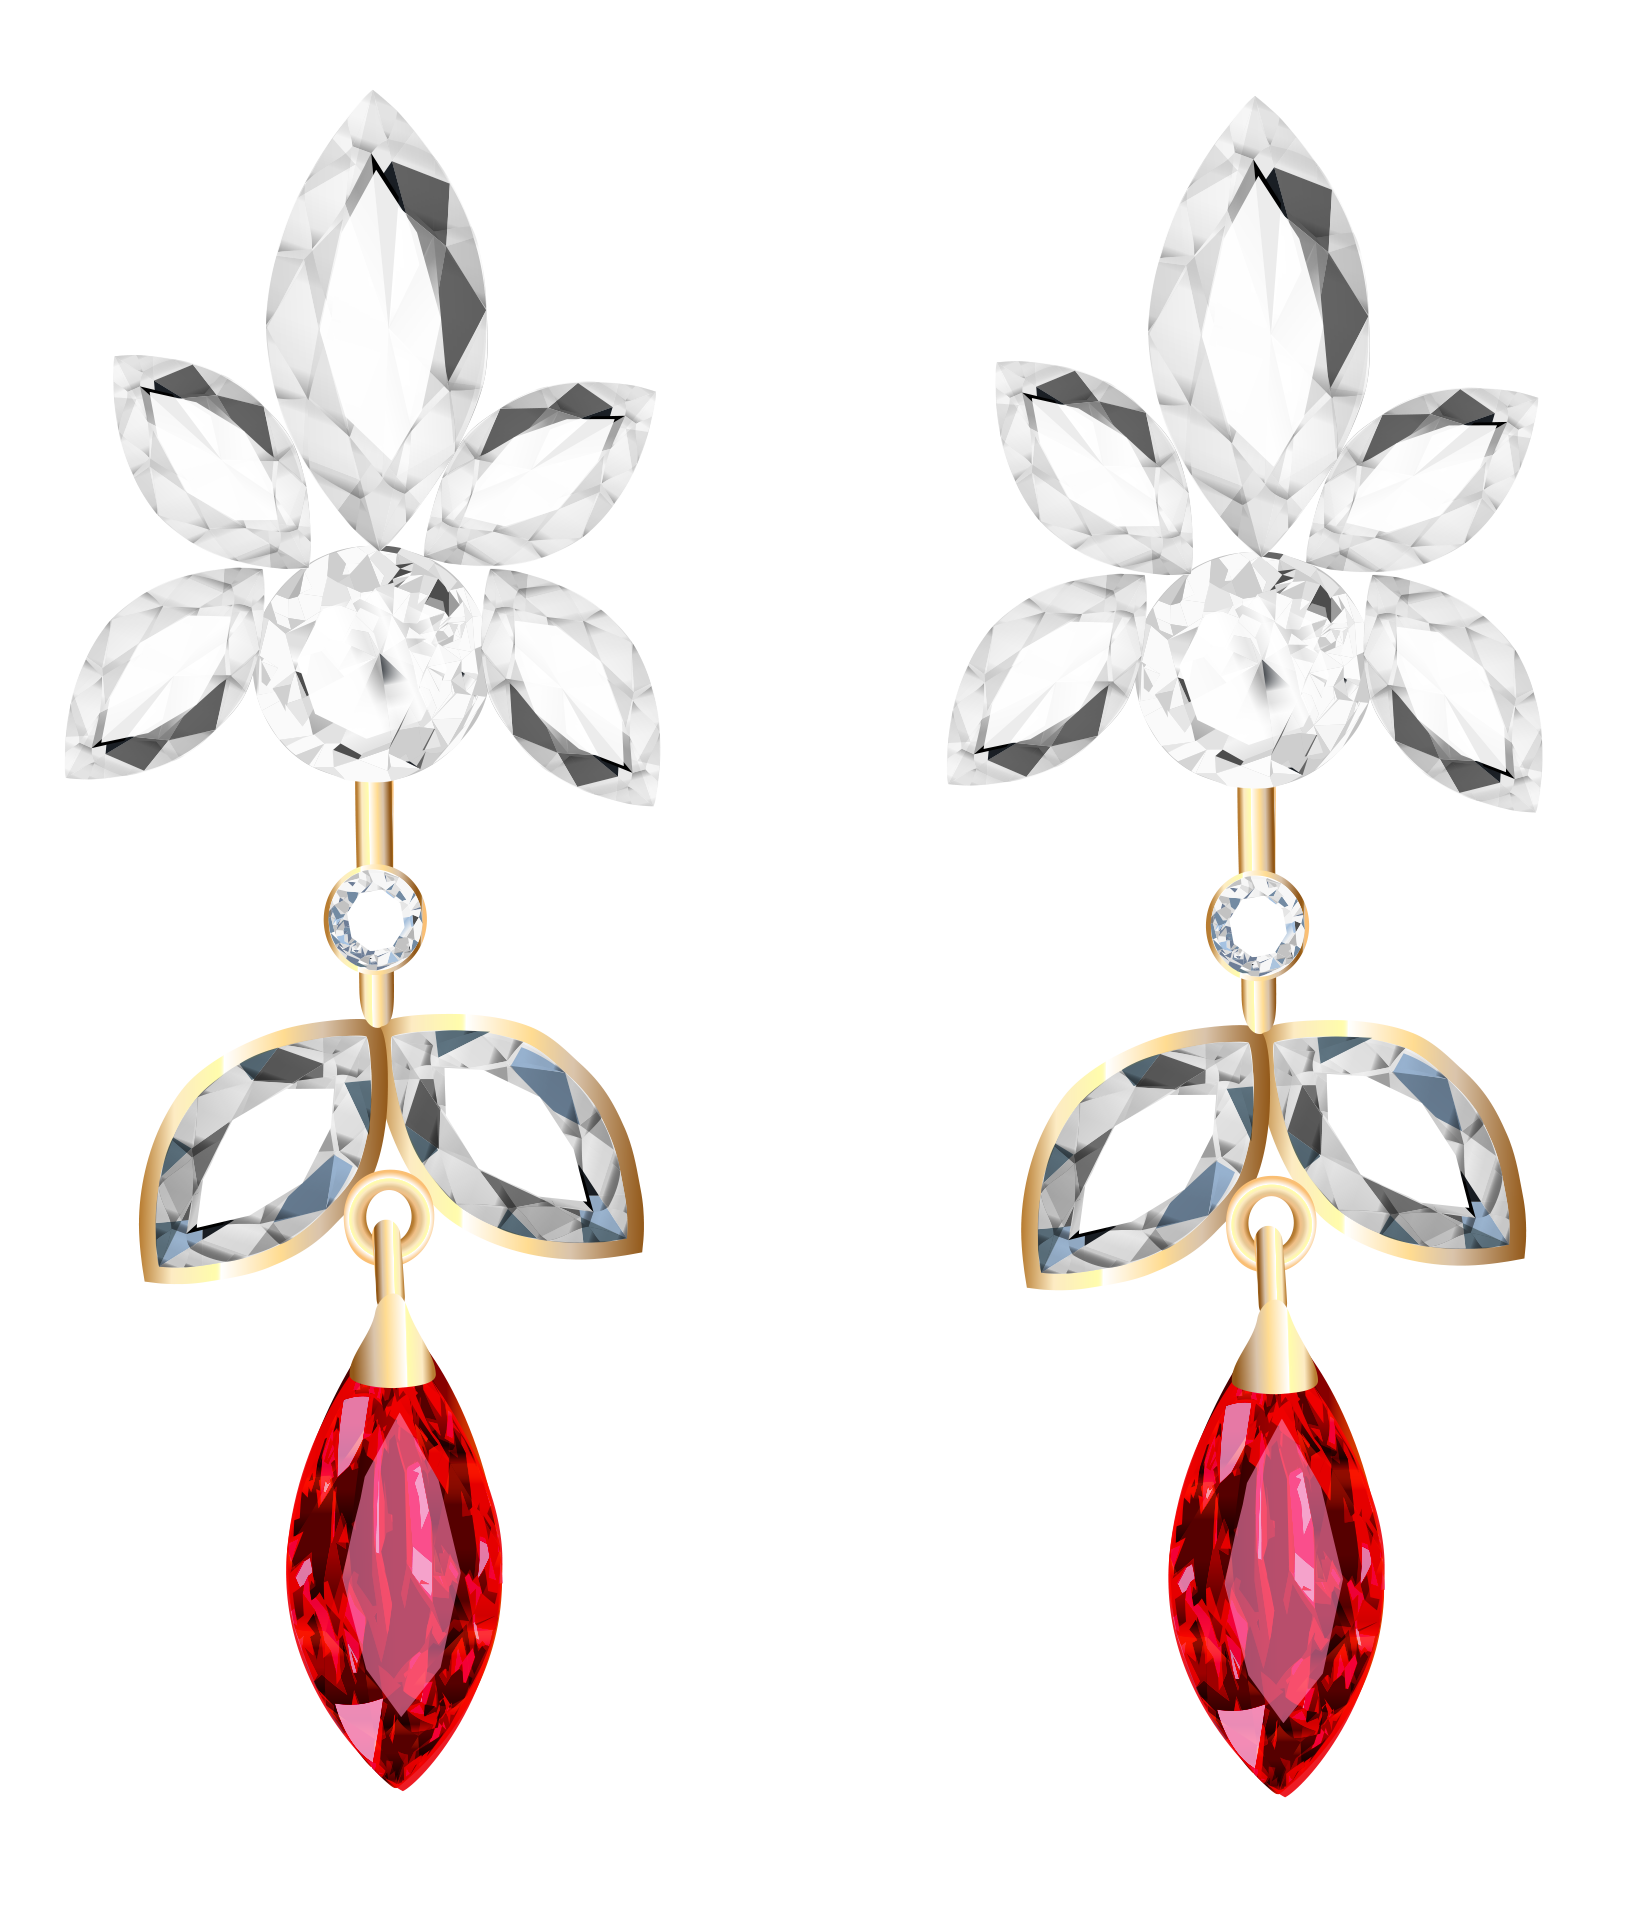 Earring transparent. Collection of free earing